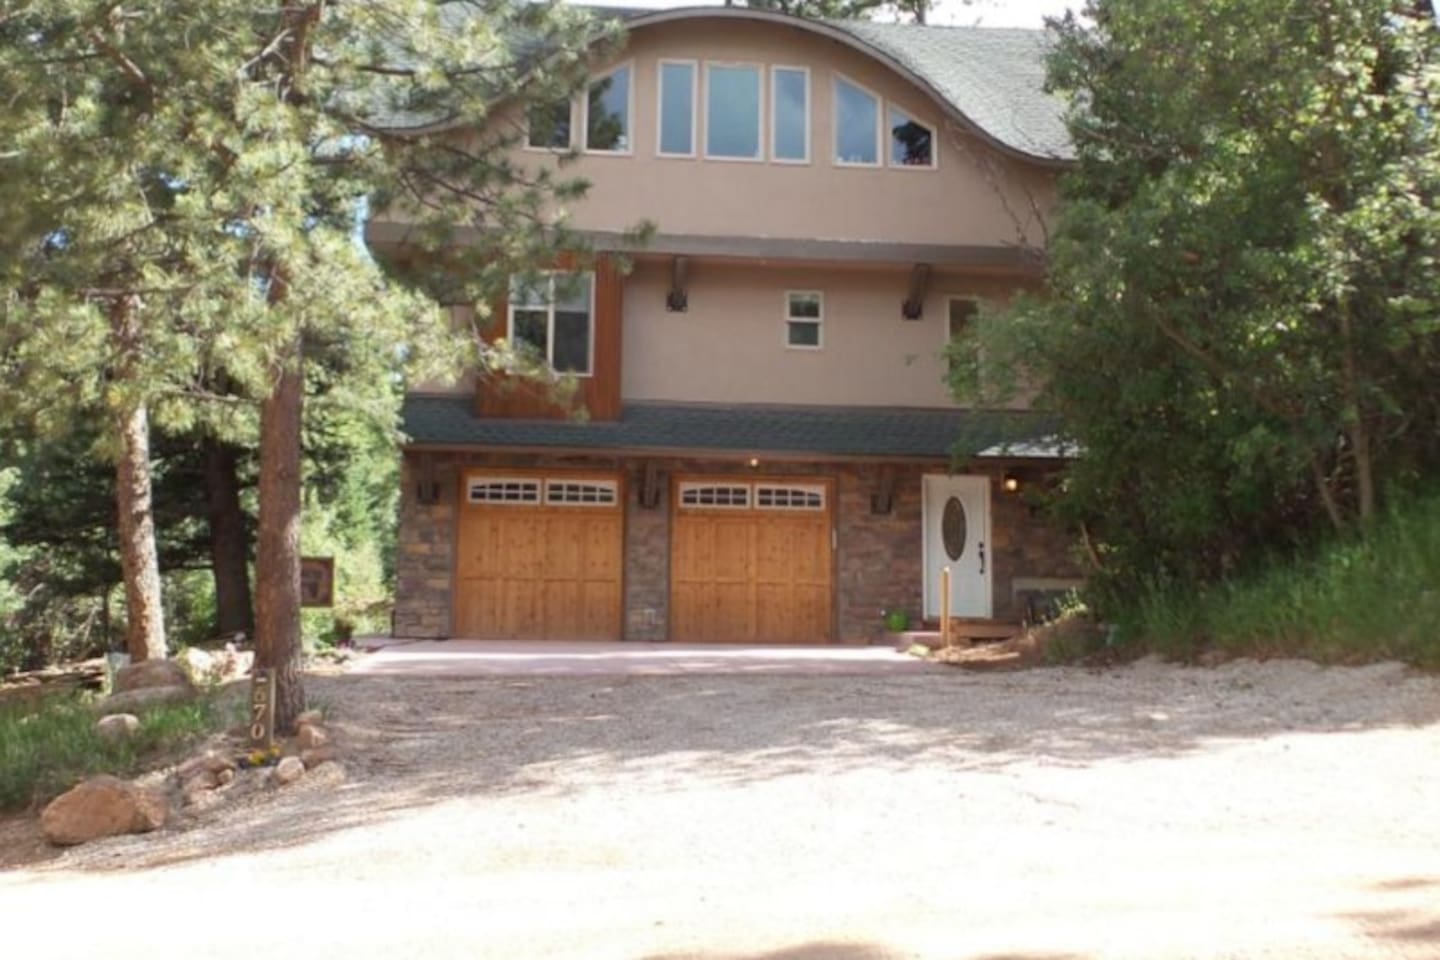 Custom built, 3 story home, 2400 sq feet in a phenomenal location backing Pike National Forest. Amenities include: fully loaded spacious kitchen, elevator access to all floors, balconys with views, and more! Driveway & garage parking available.